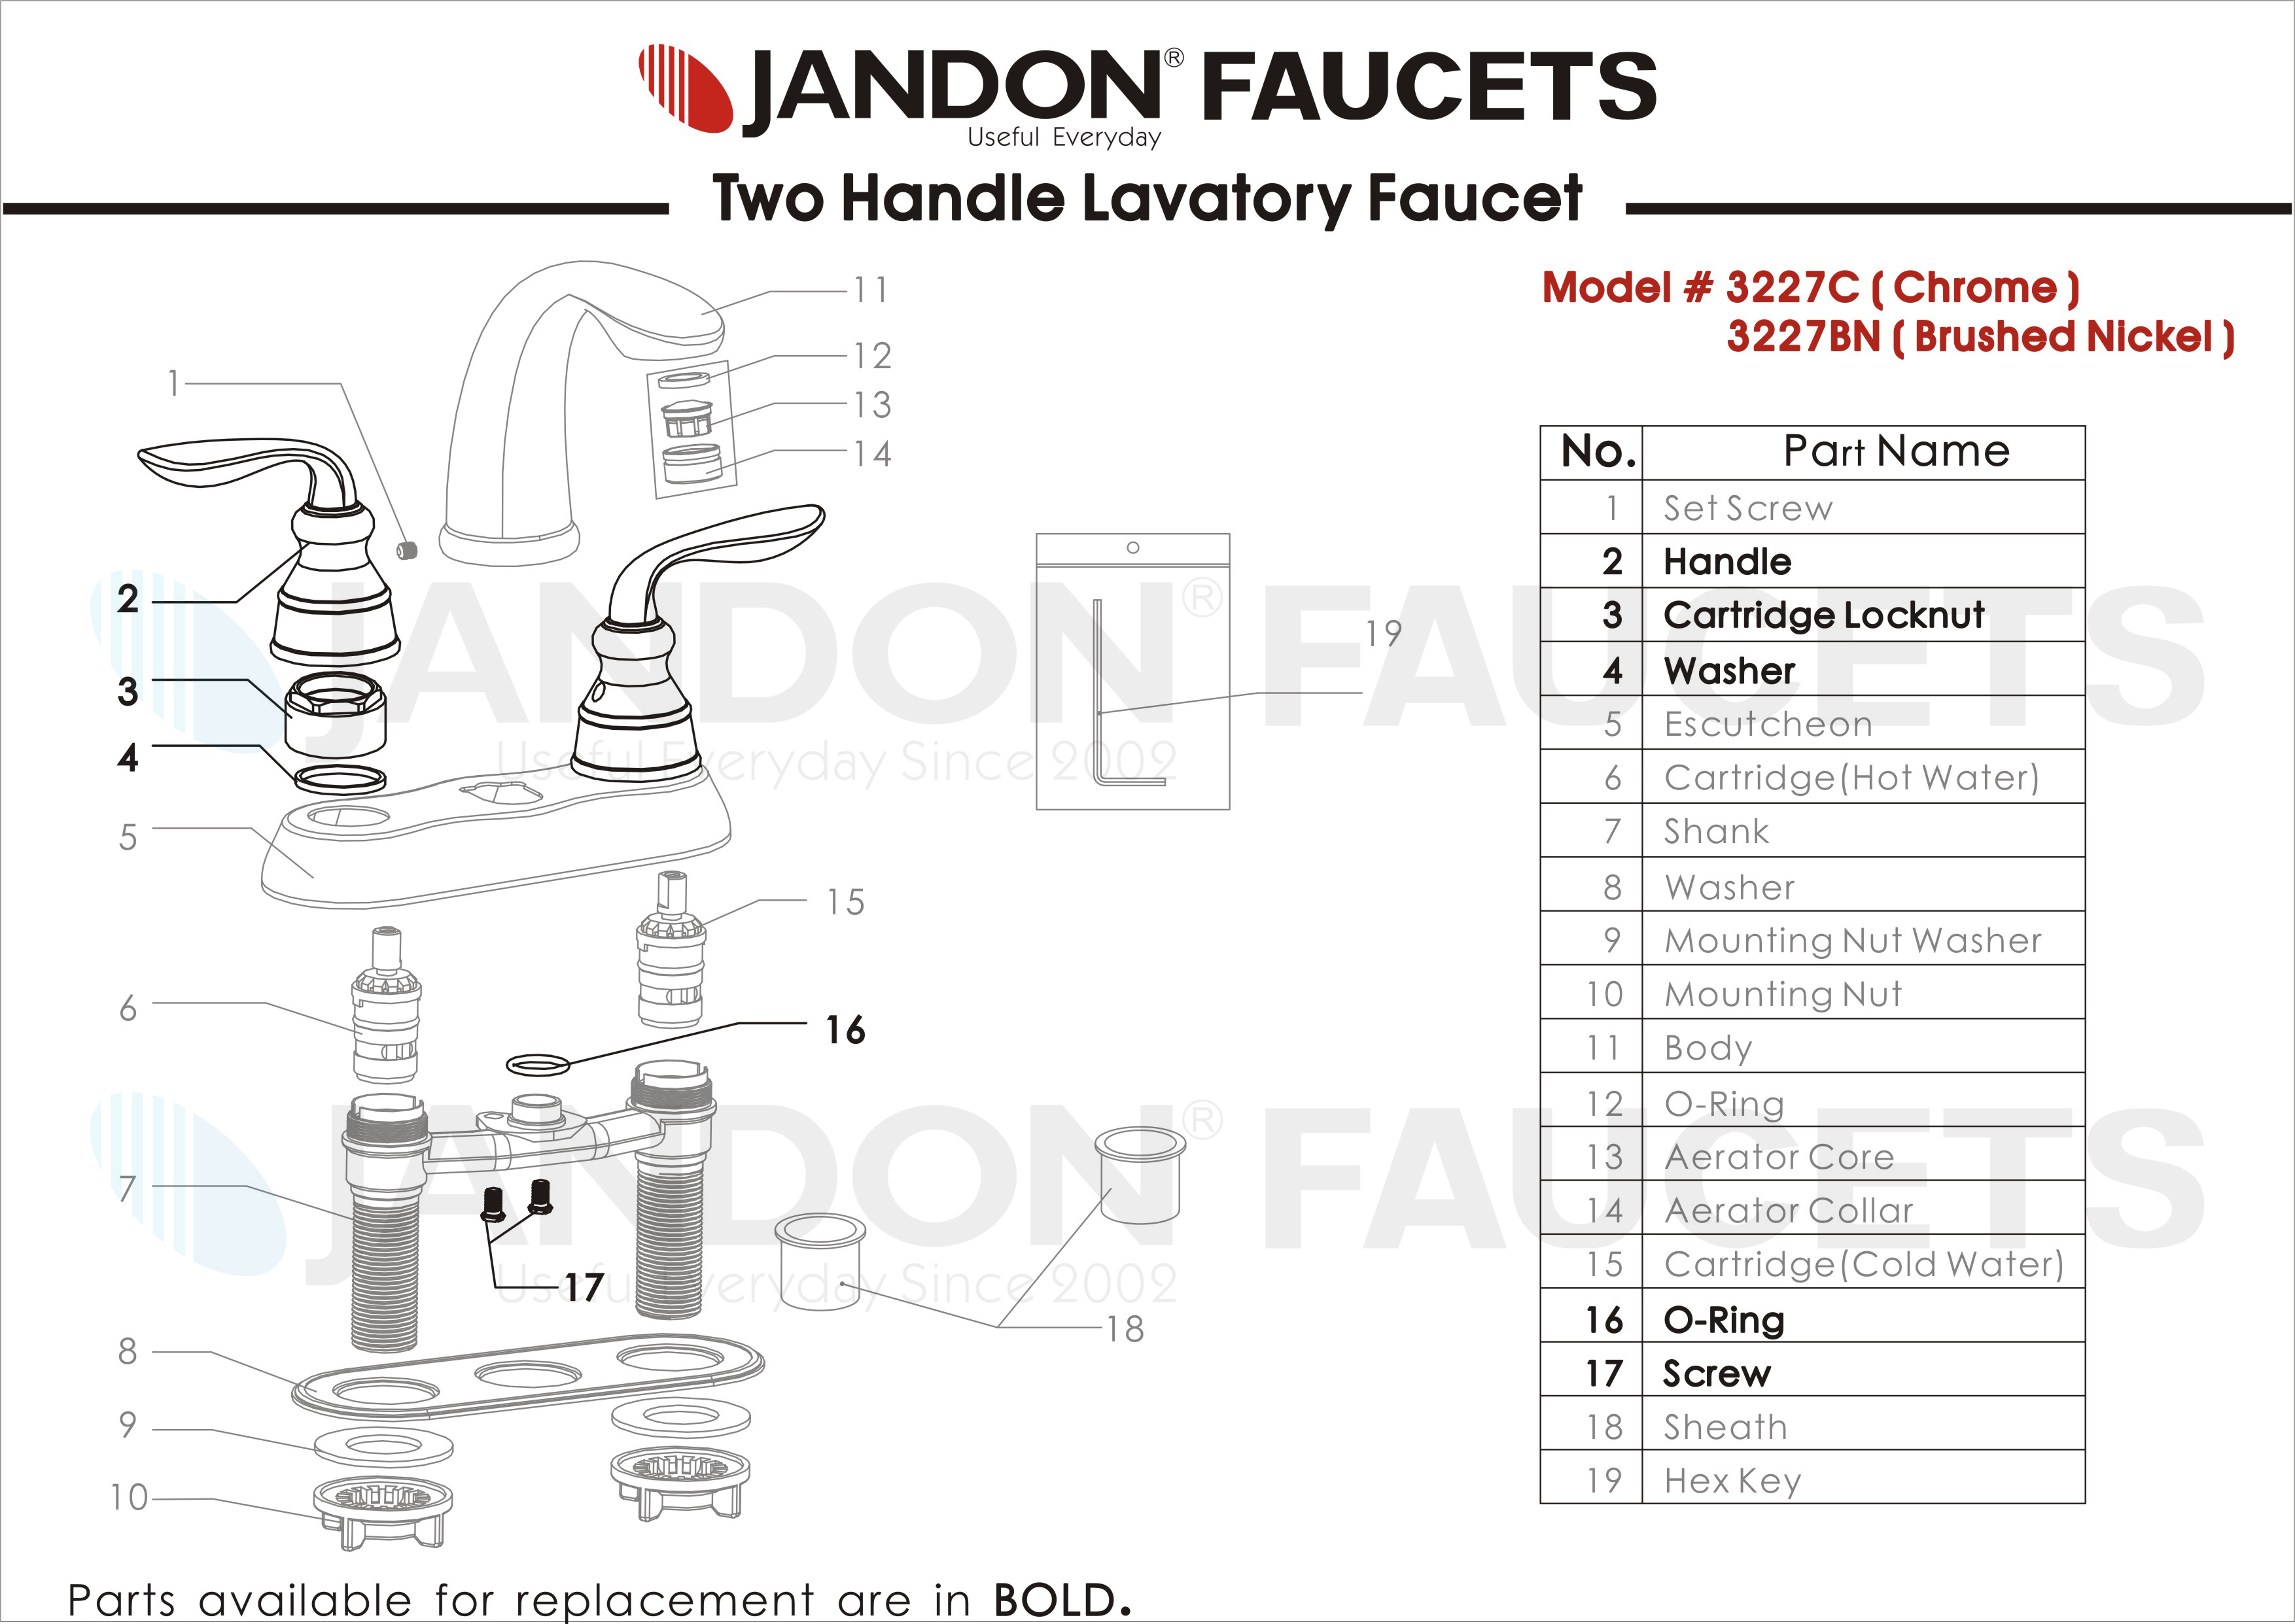 Jandon Faucet » Useful Everyday Since 2002 » 3227 • Two